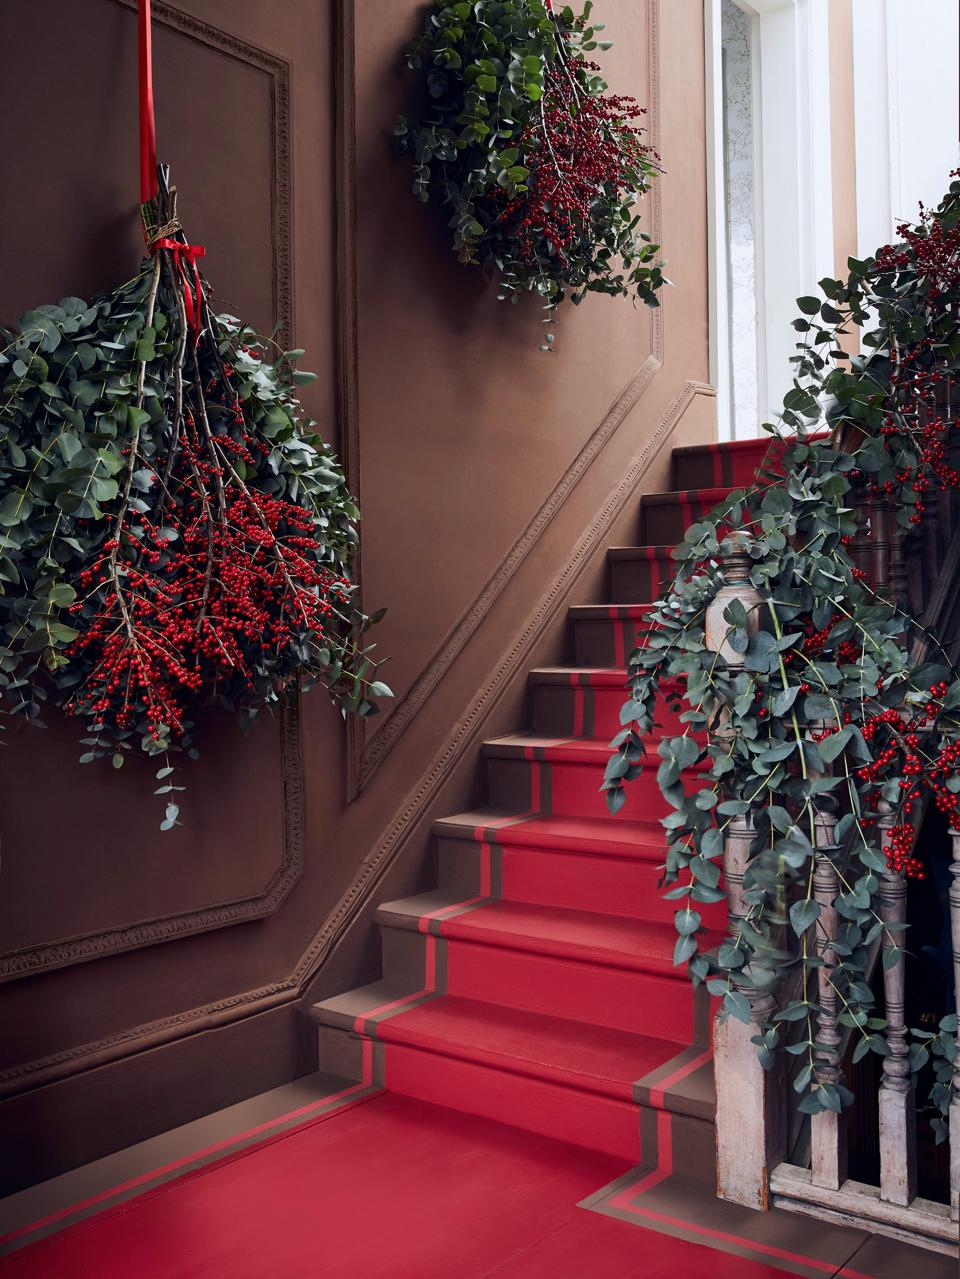 weihnachtsdeko-profitipps-decohome.de-annie-sloan-christmas-hallway-chalk-paint-in-honfleur-and-emperors-silk-gloss-lacquer-on-stairs-lifestyle-portrait-1